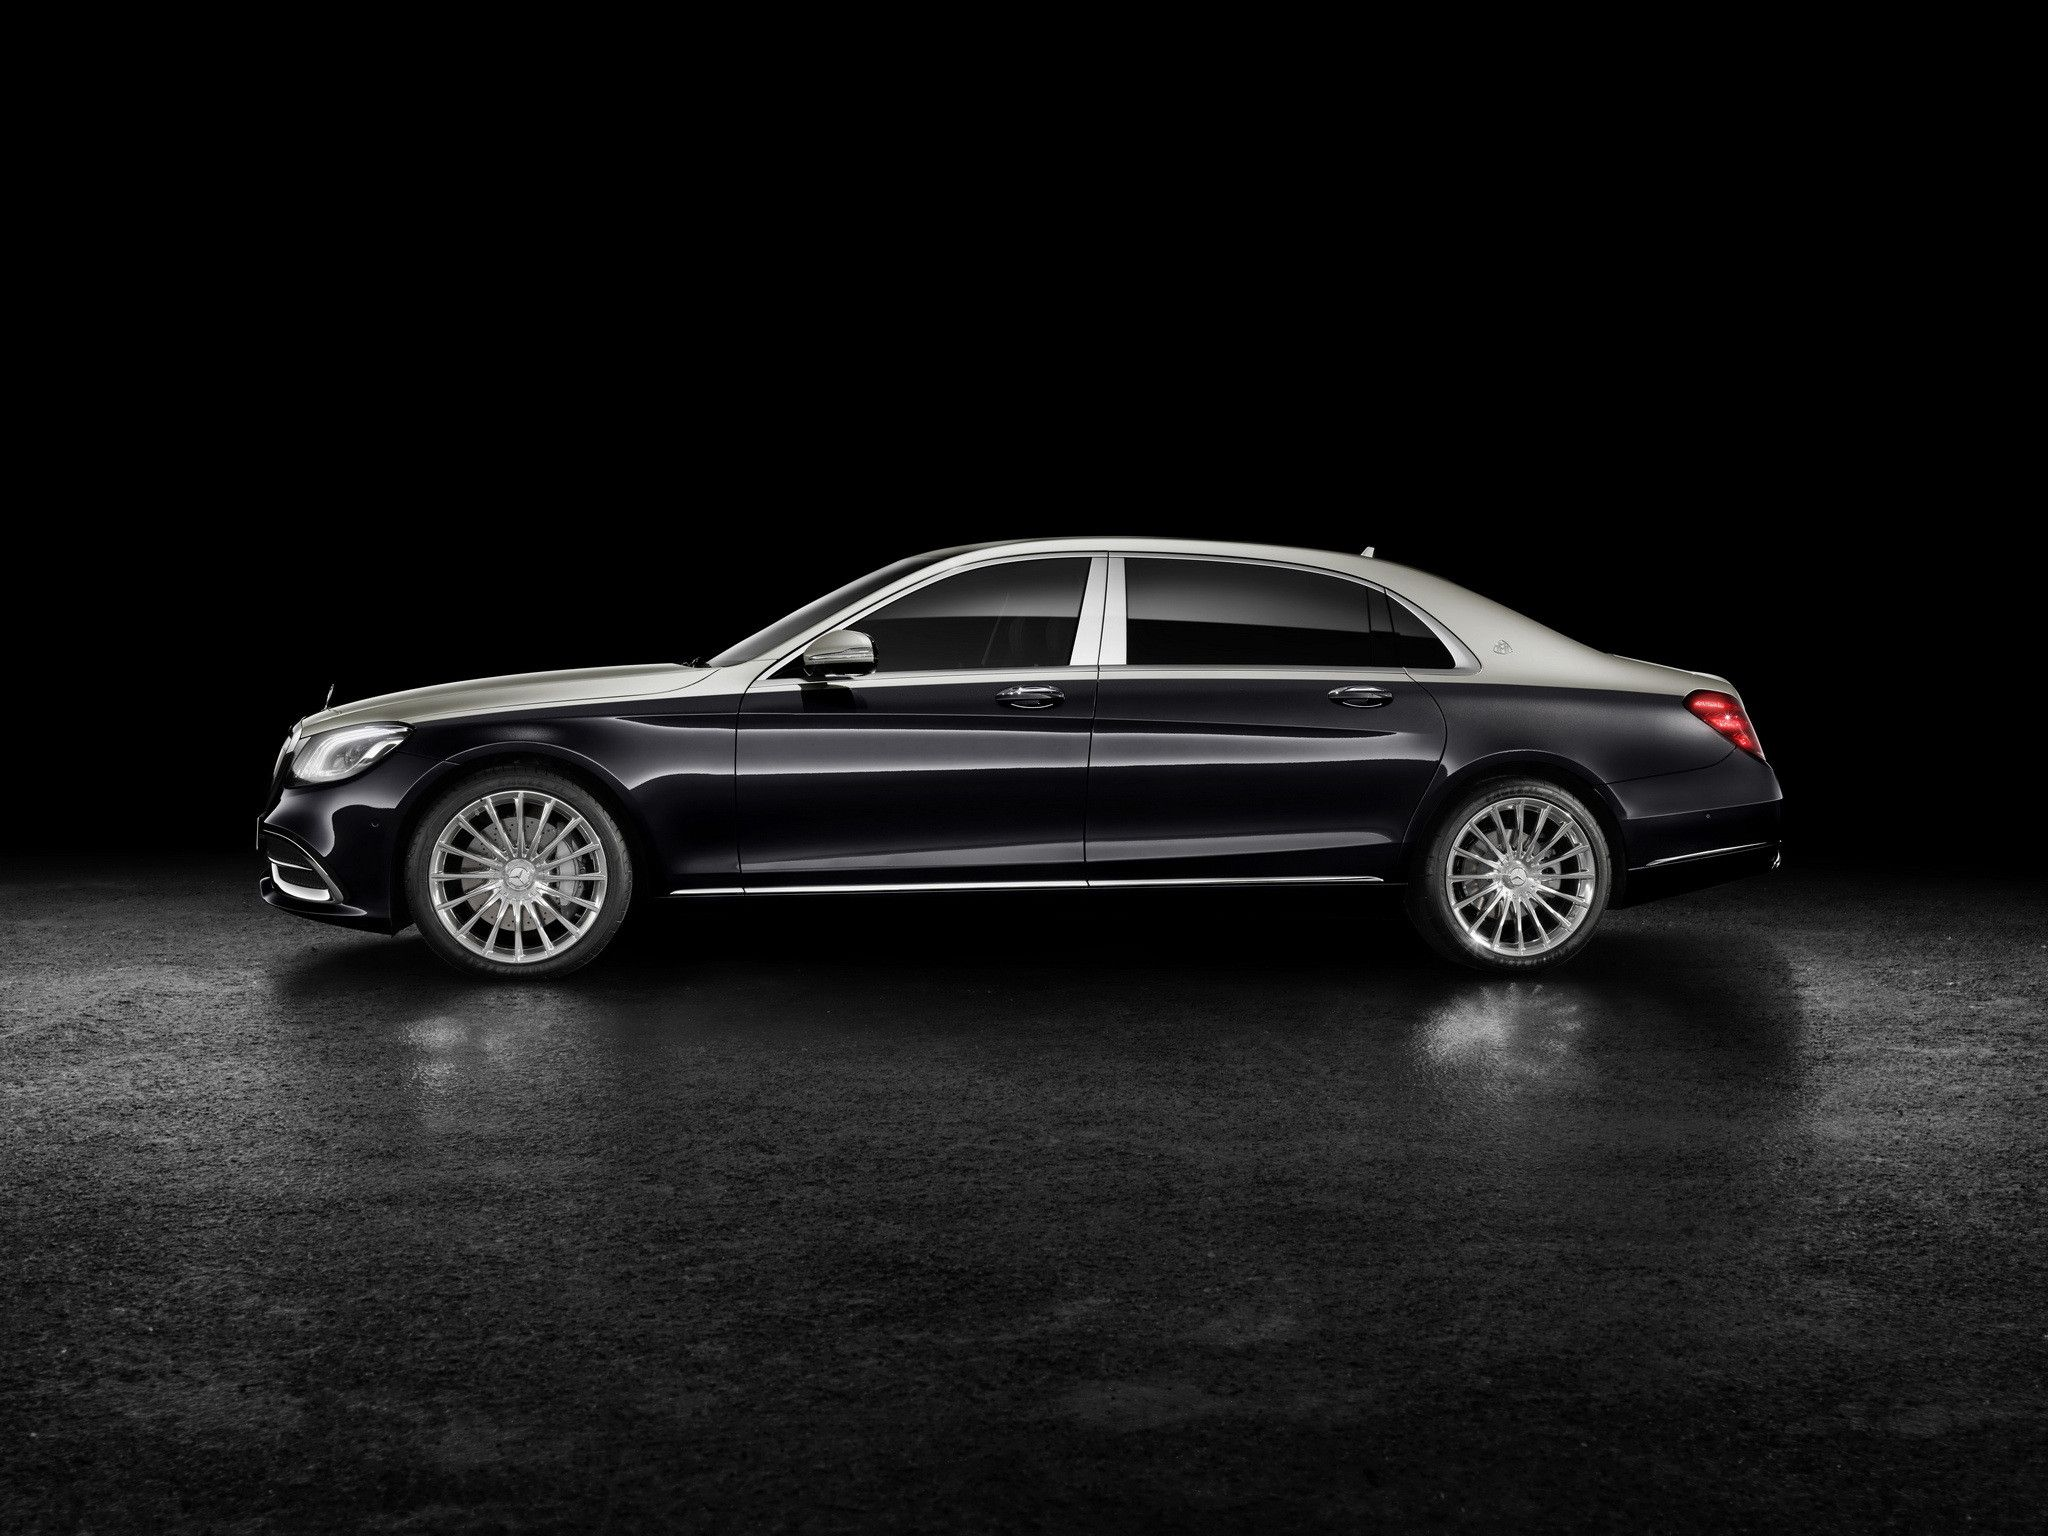 Mercedes S Class 2019 Redesign Die Mercedes Maybach S Klasse Im Mercedes Maybach Mercedes Benz Maybach Mercedes Clase S